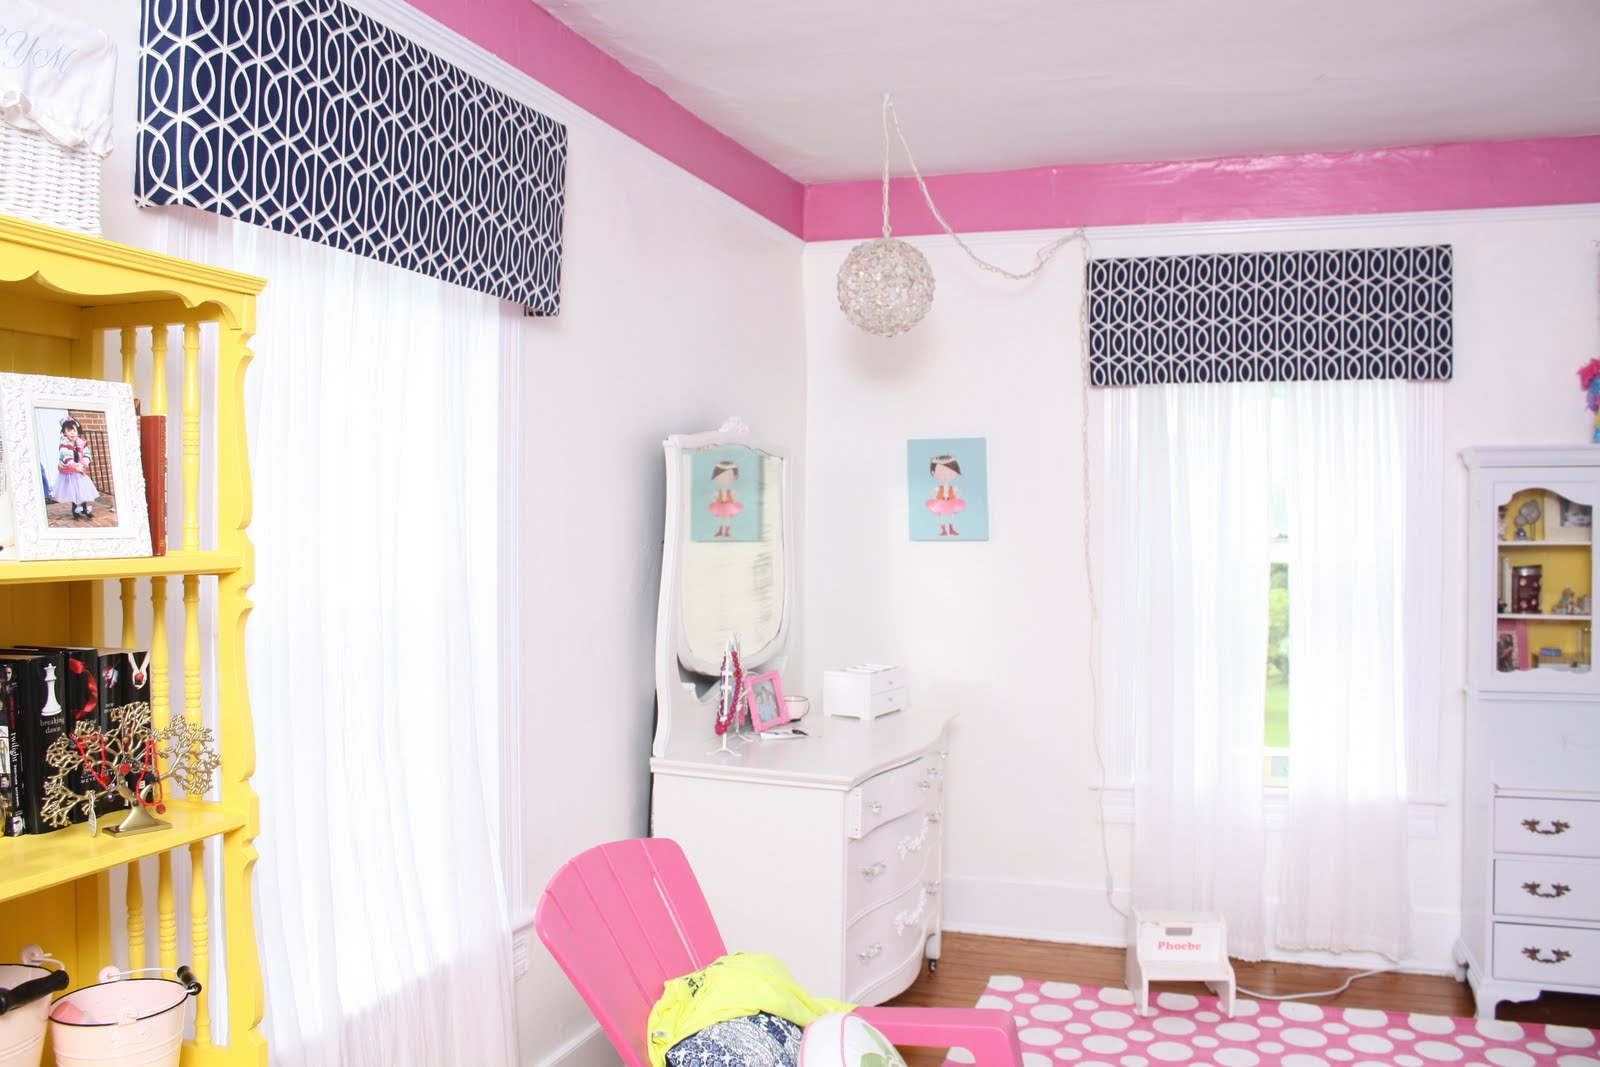 Curtain Ideas On Pinterest Curtains Arched Window